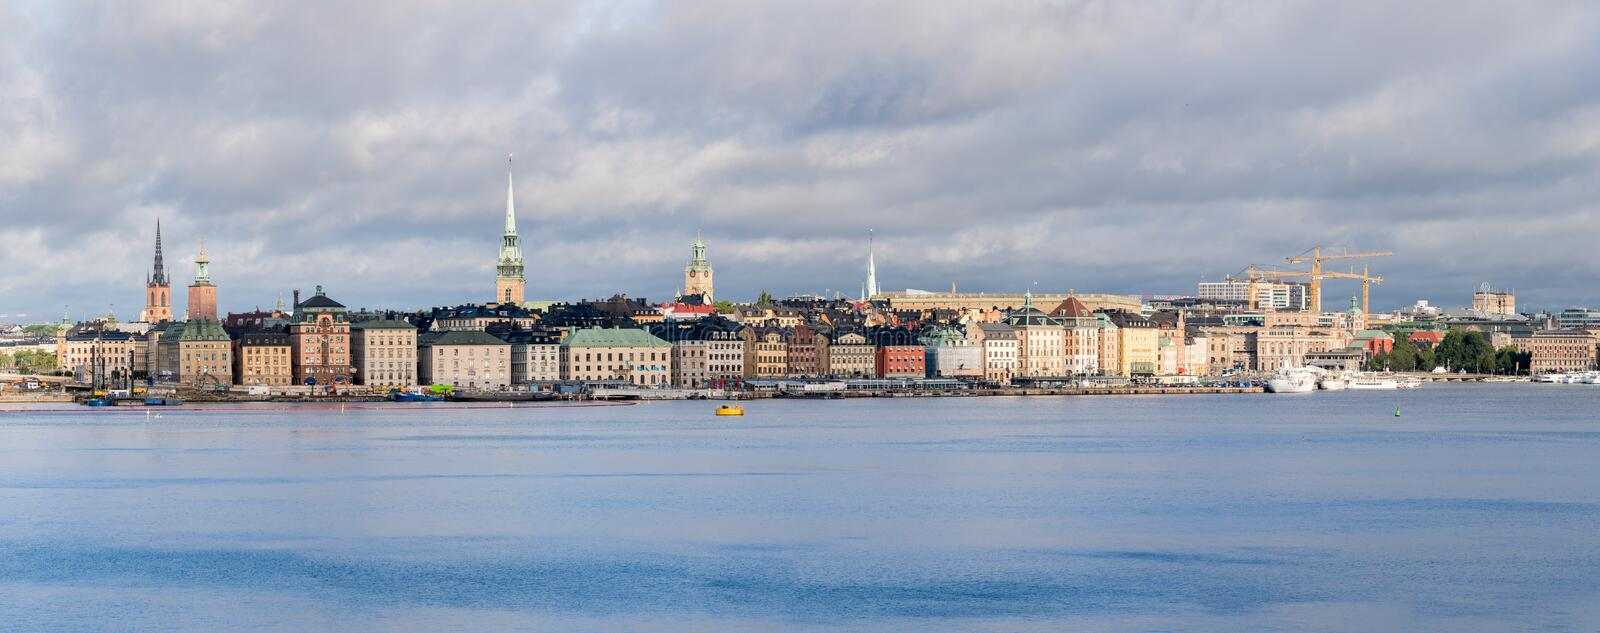 Panorama of Gamla Stan in Stockholm, Sweden royalty free stock image